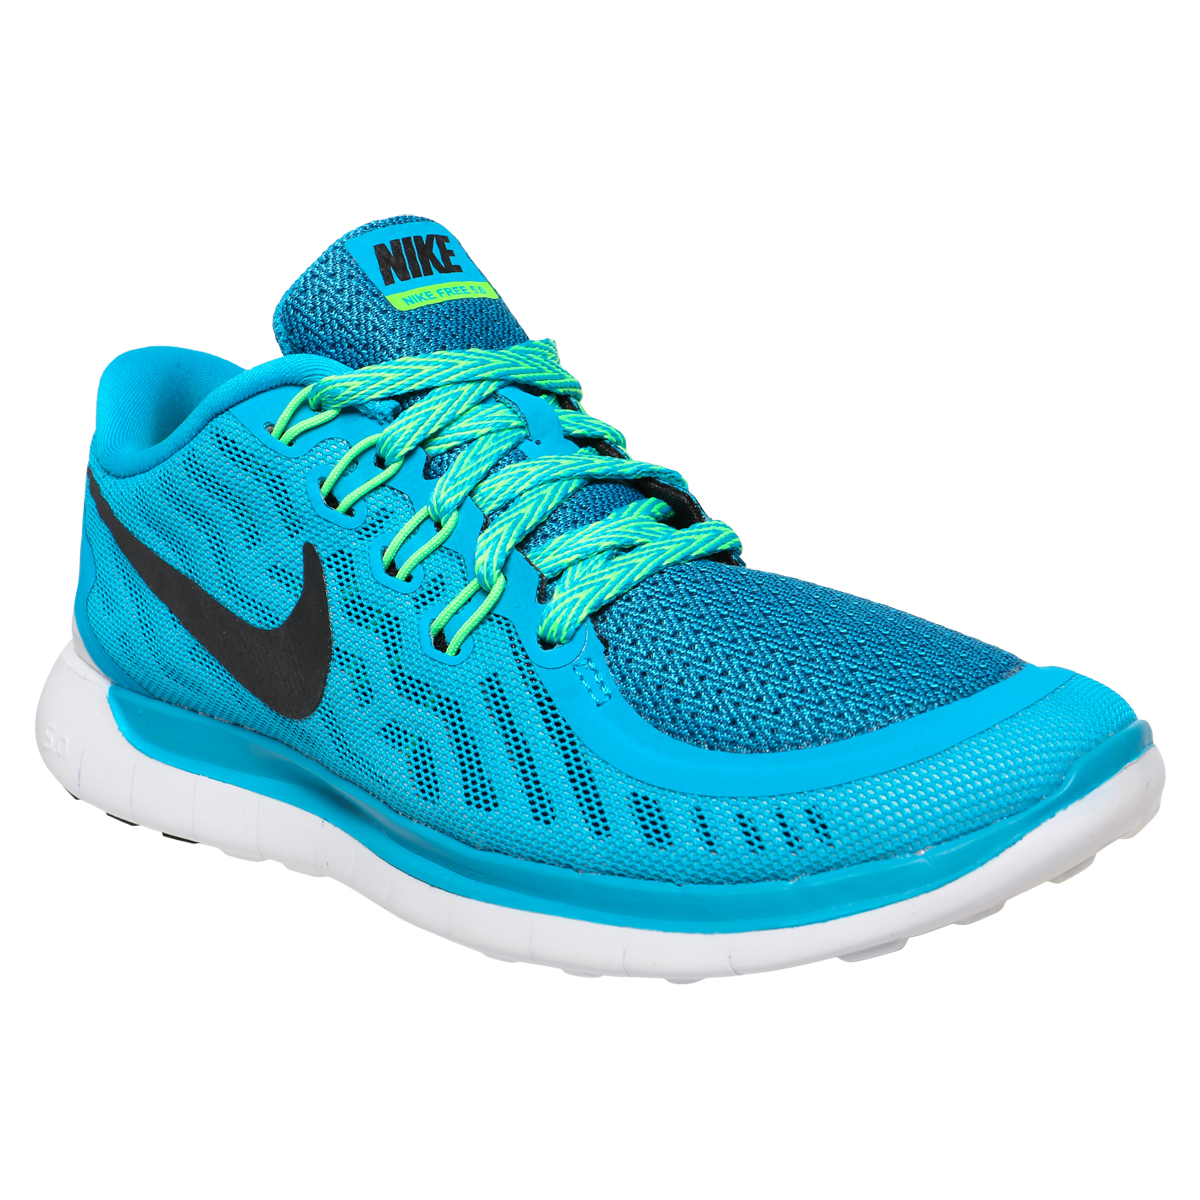 Lastest Nike Free 50 V4 Women39s Shoes Green